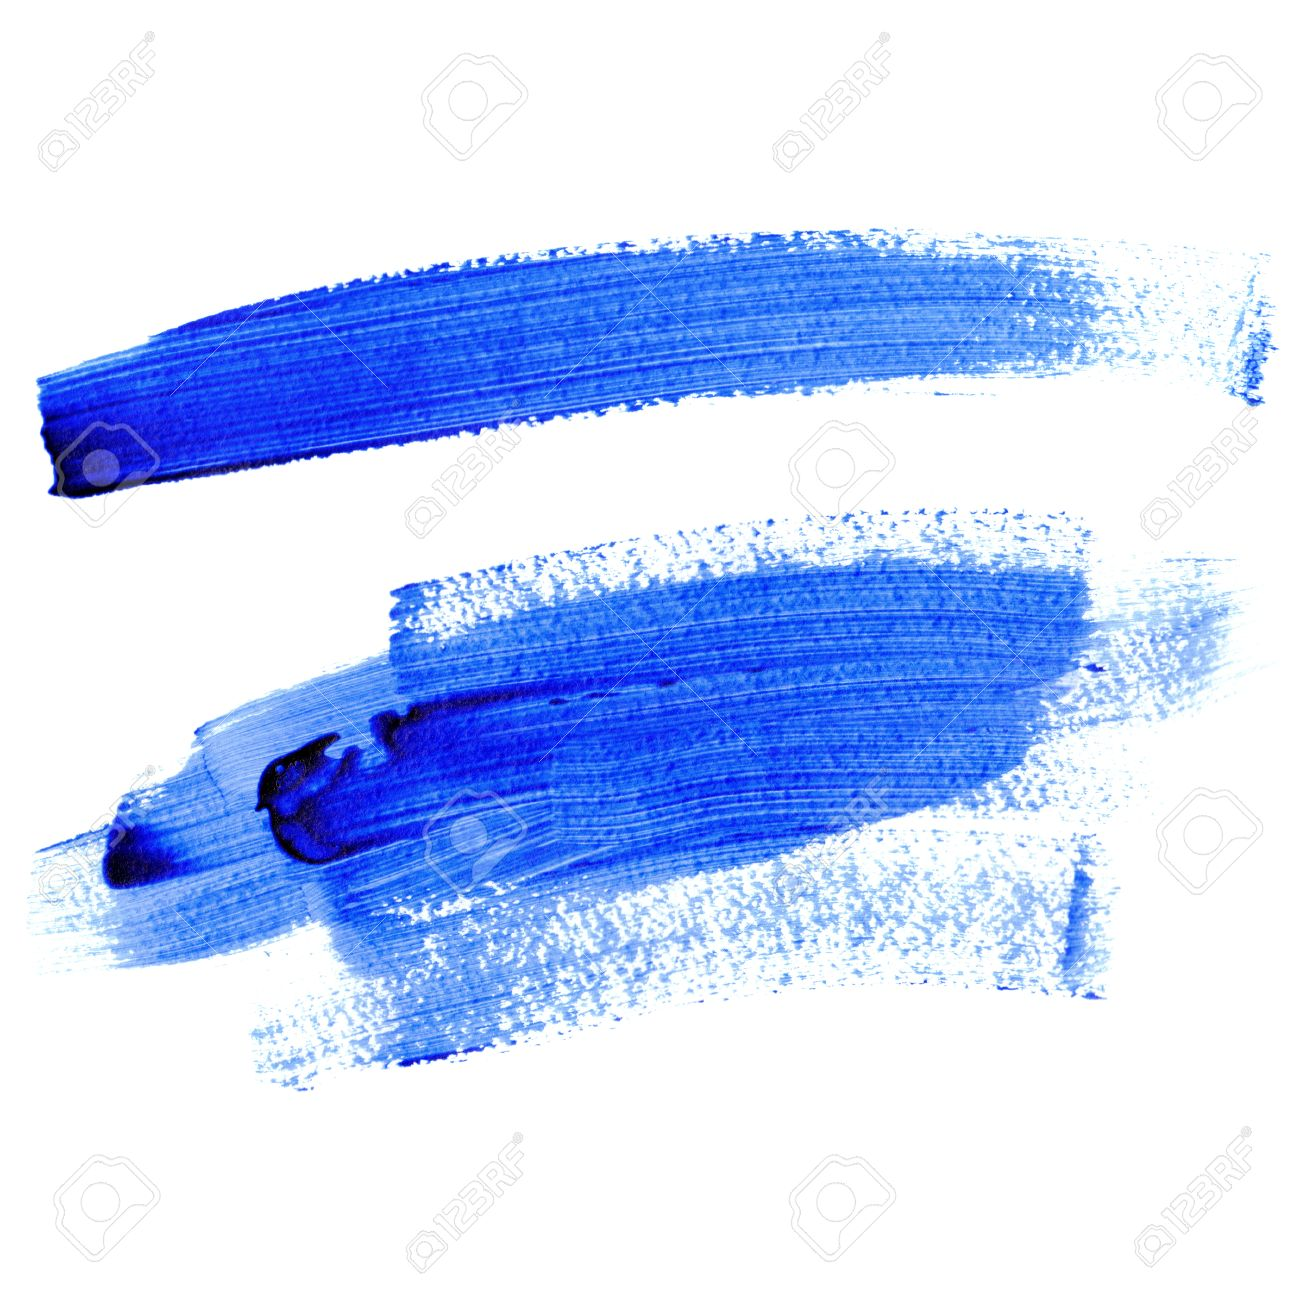 Blue Paint traces of lines with blue paint isolated on a white background